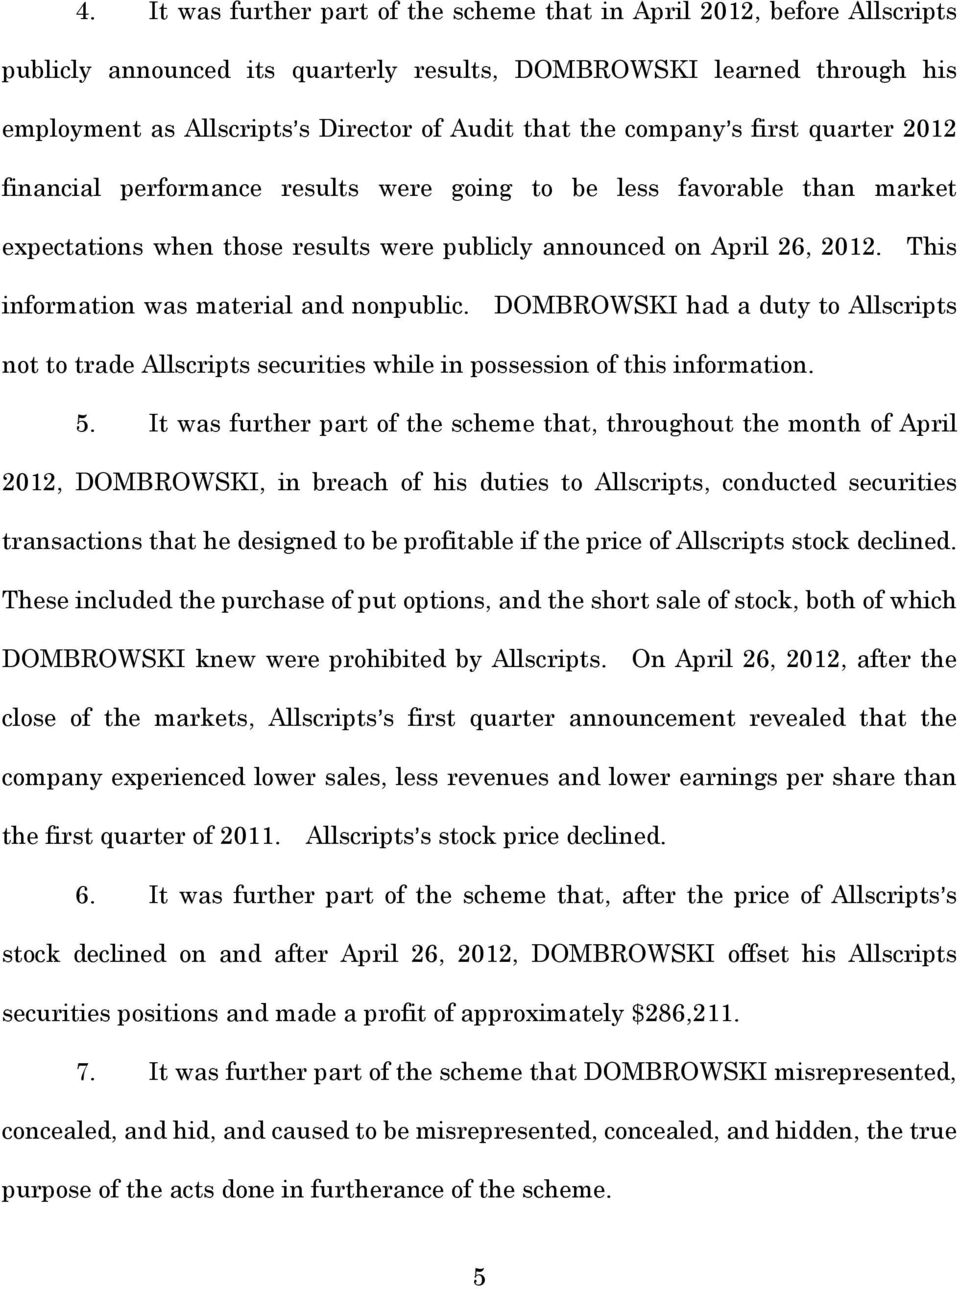 This information was material and nonpublic. DOMBROWSKI had a duty to Allscripts not to trade Allscripts securities while in possession of this information. 5.